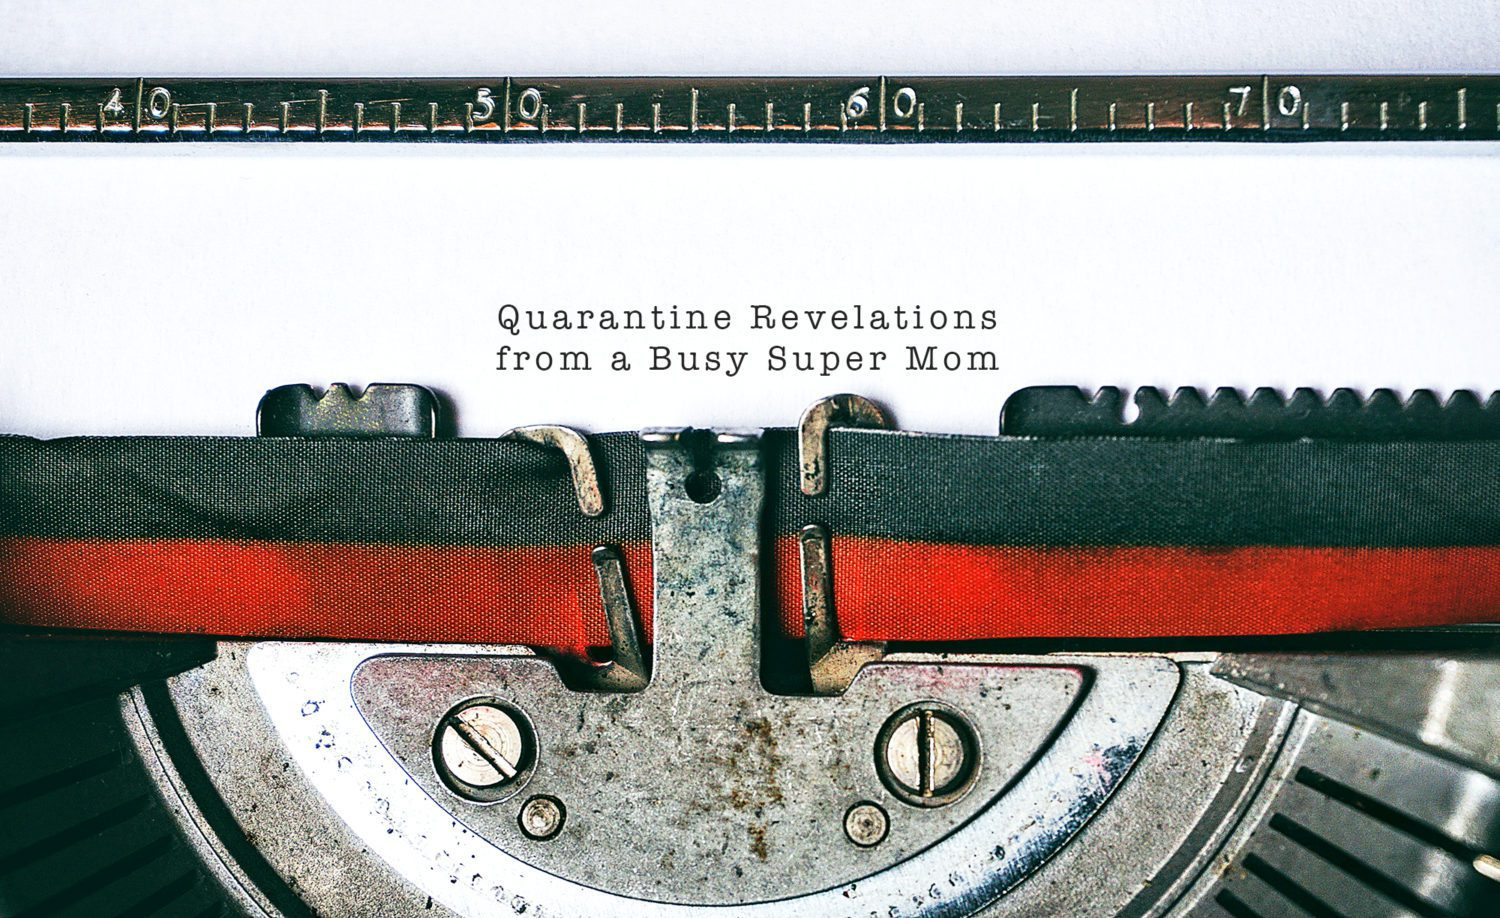 typewriter with paper that says Quarantine Revelations from a Busy Super Mom